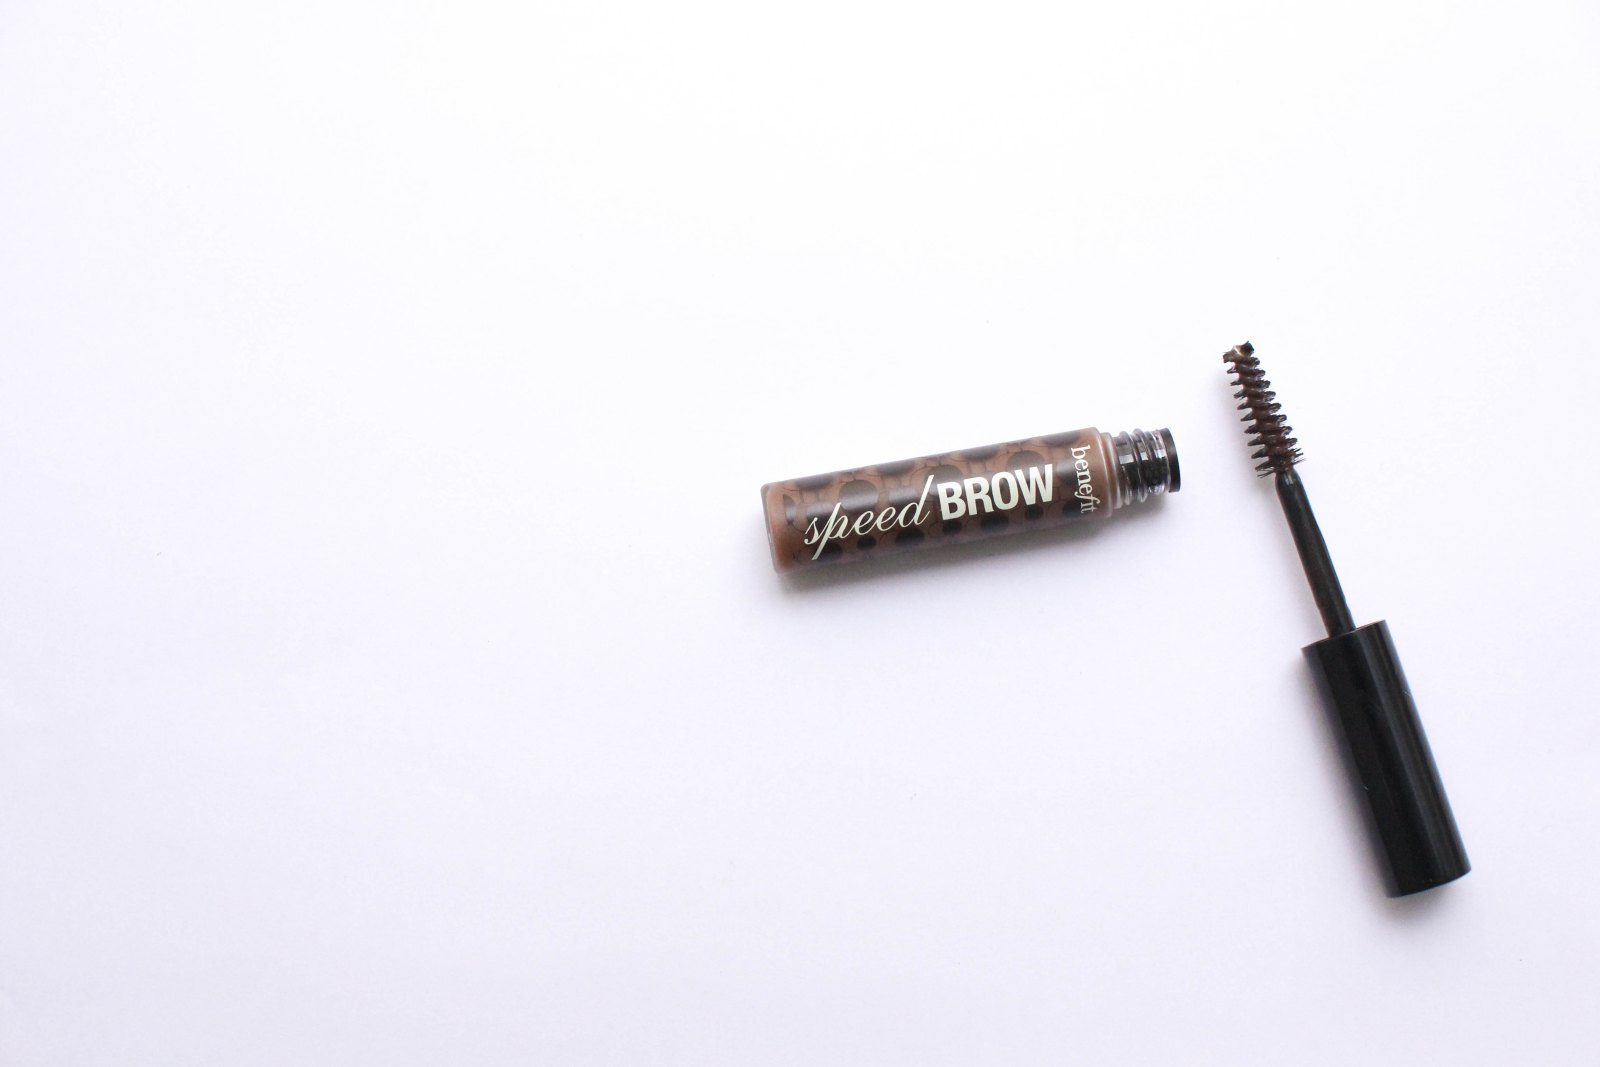 "Benefit Cosmetics' ""Speed Brow"" Eyebrow Gel"